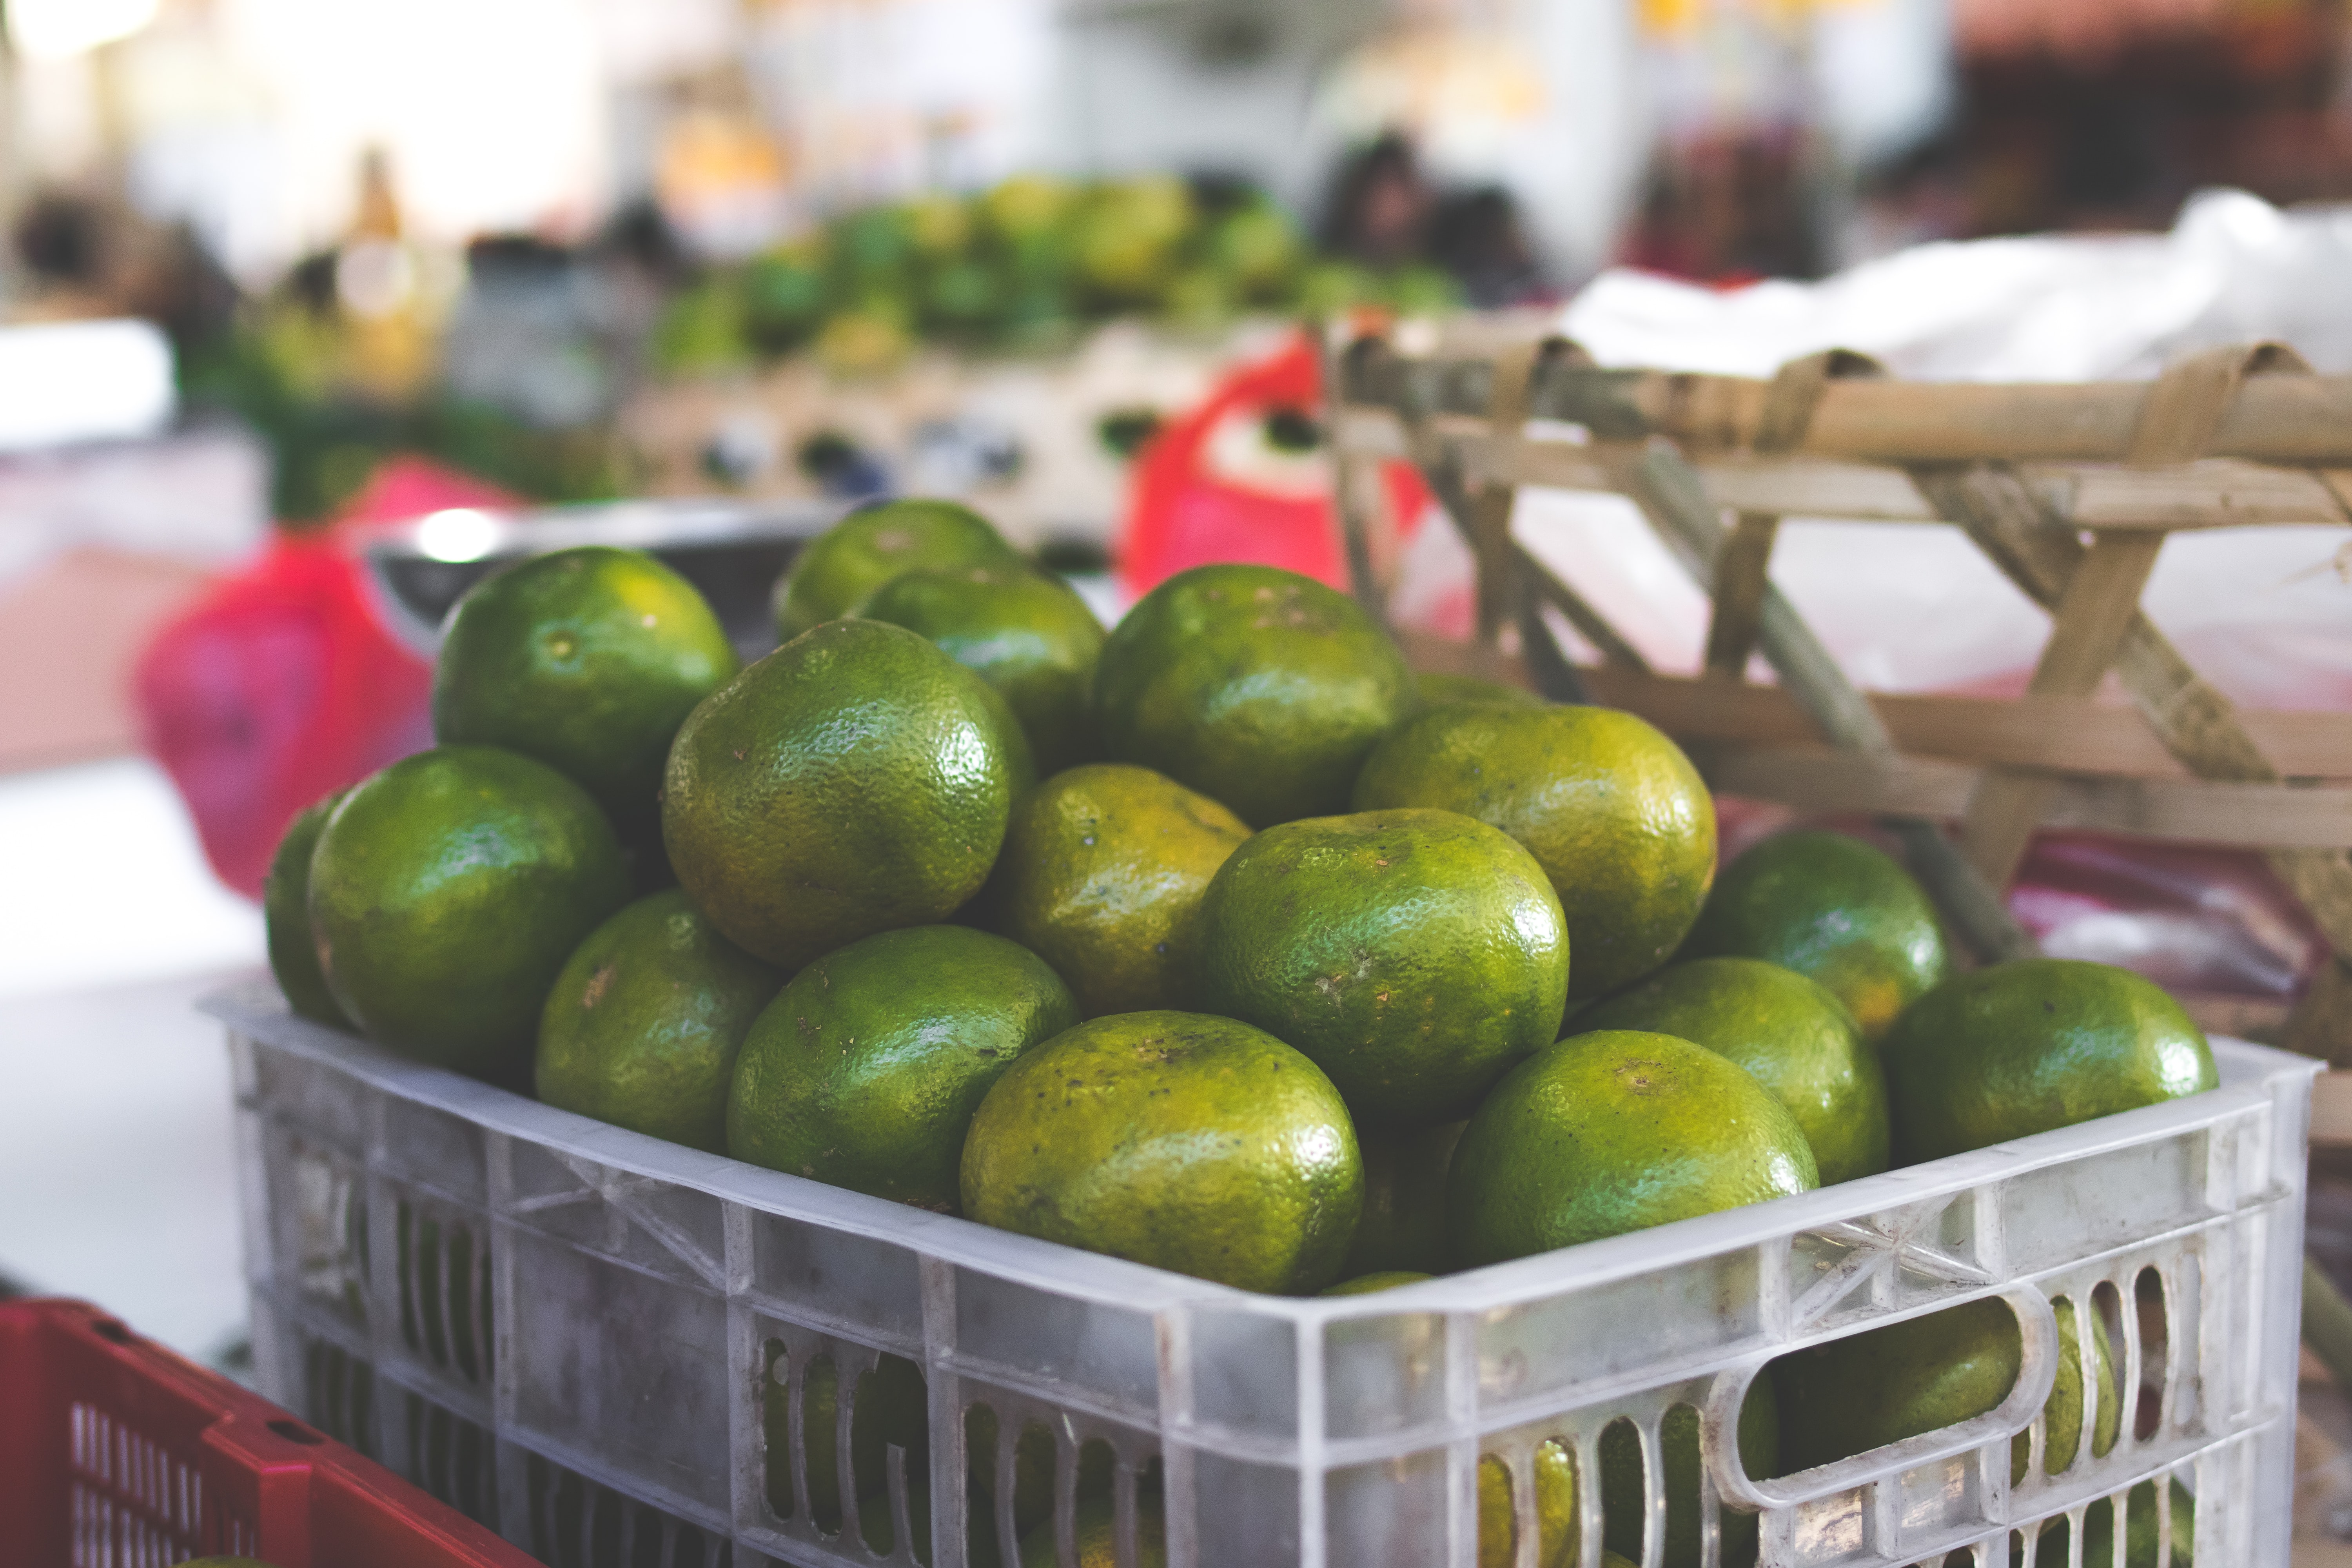 green citrus fruits in white crate